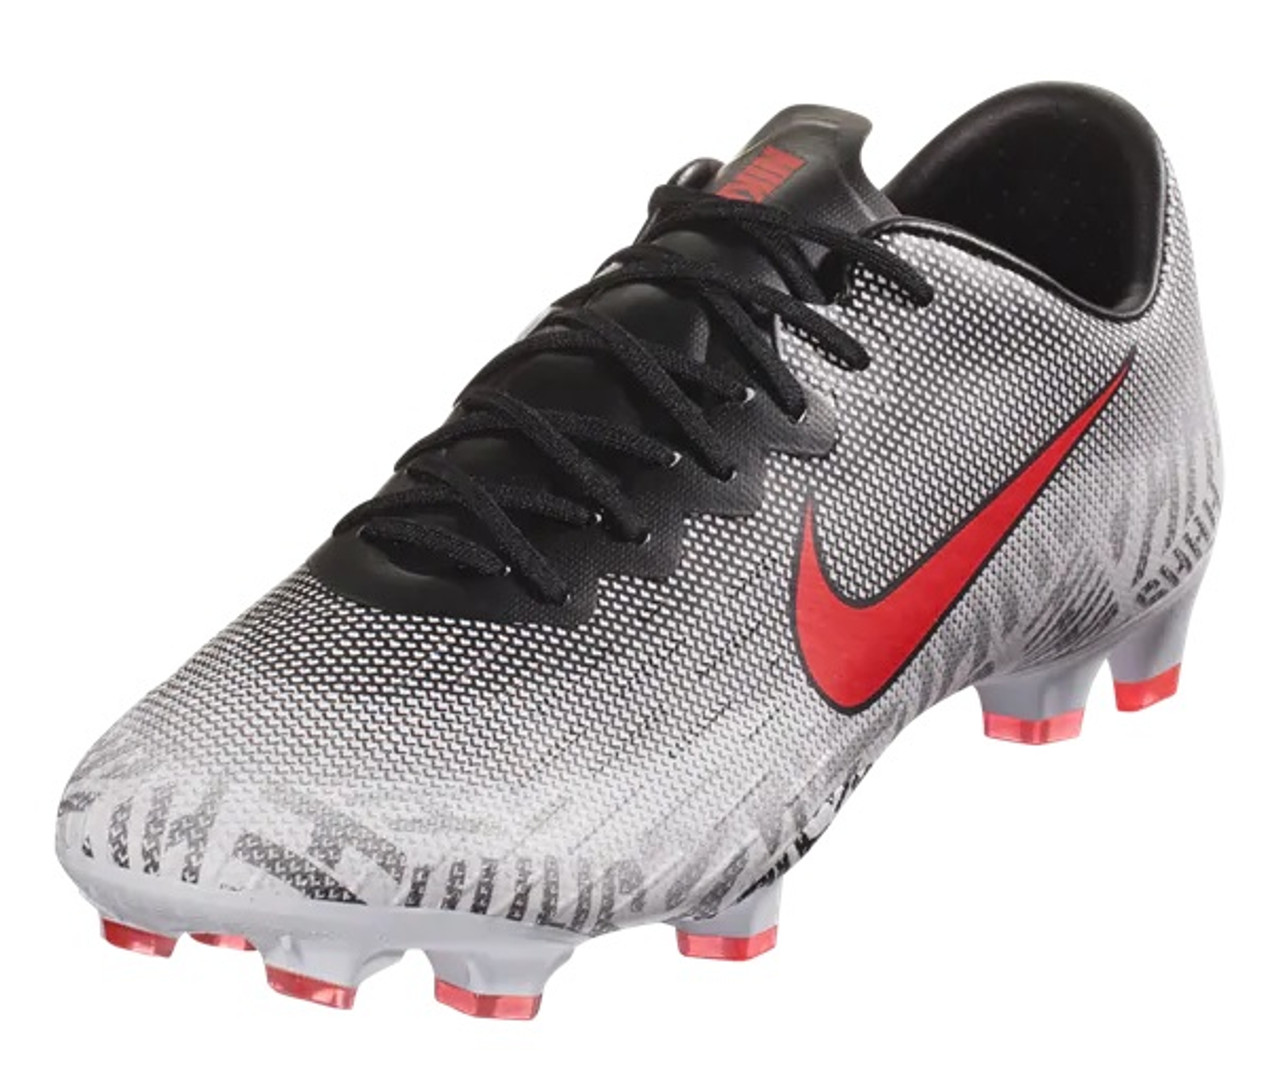 100% high quality picked up buy online Nike Mercurial Vapor Pro Neymar FG Soccer Cleats White Red ...